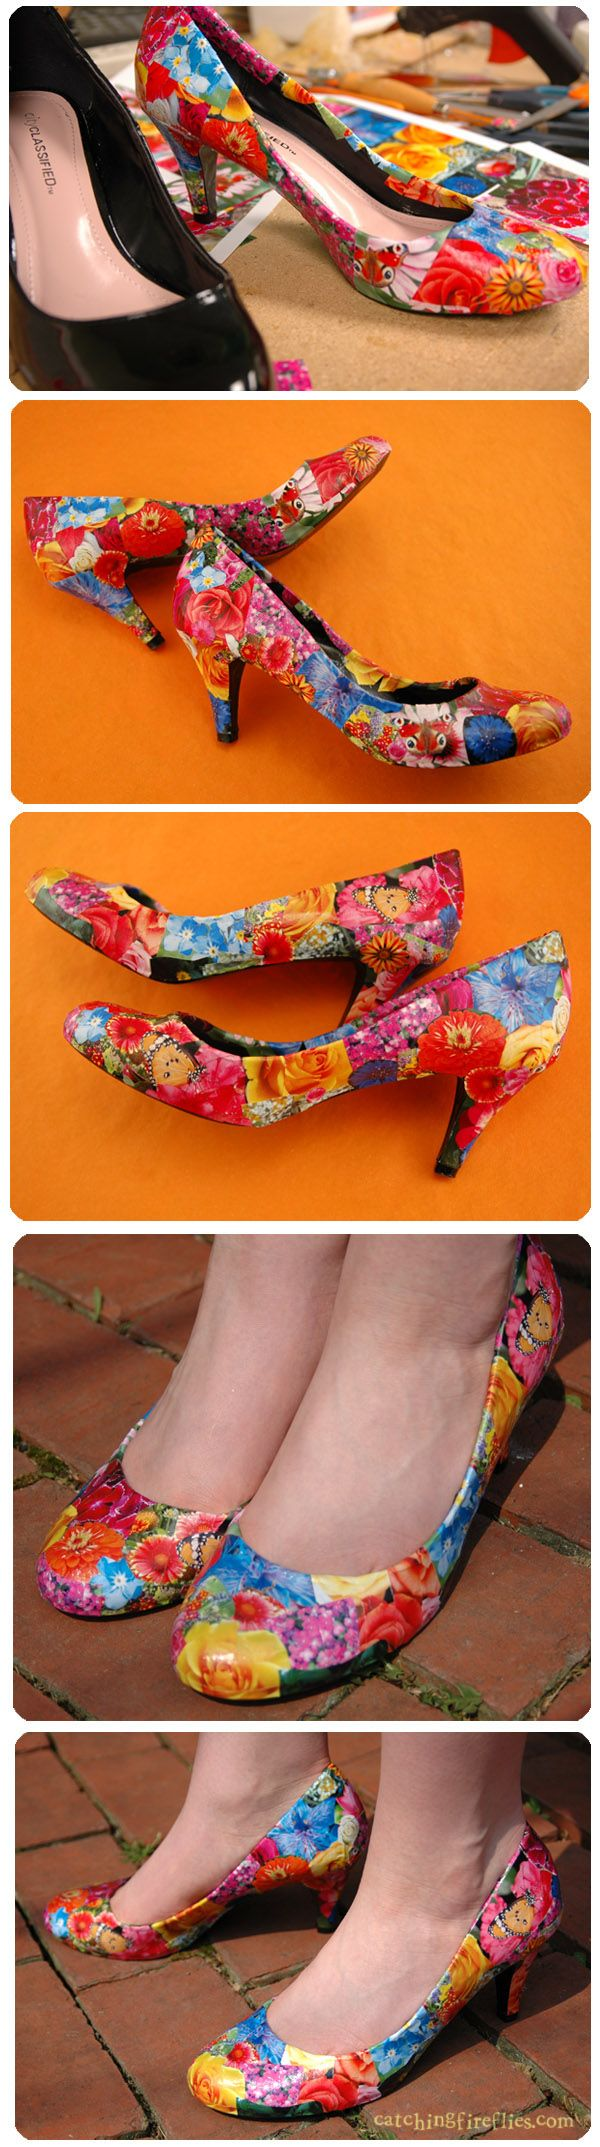 14 things you didn't know you could decoupage: Shoes!! via @WhimsicalGifts